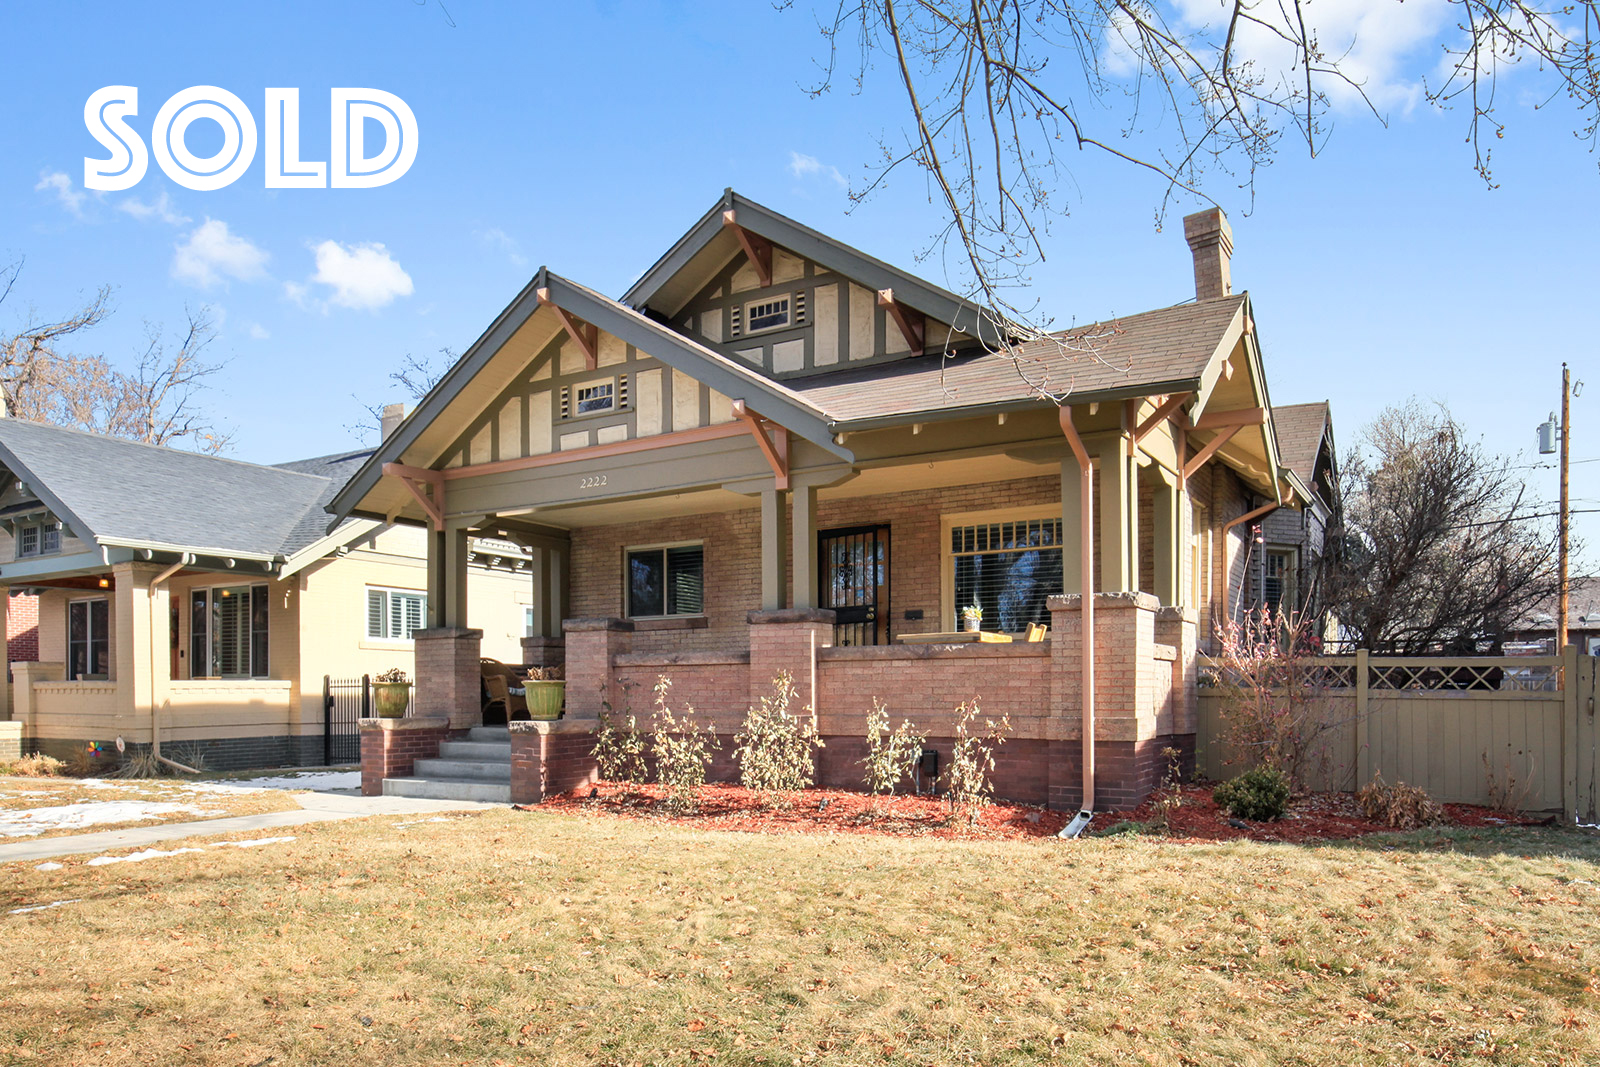 2222 Clermont St, Denver, CO